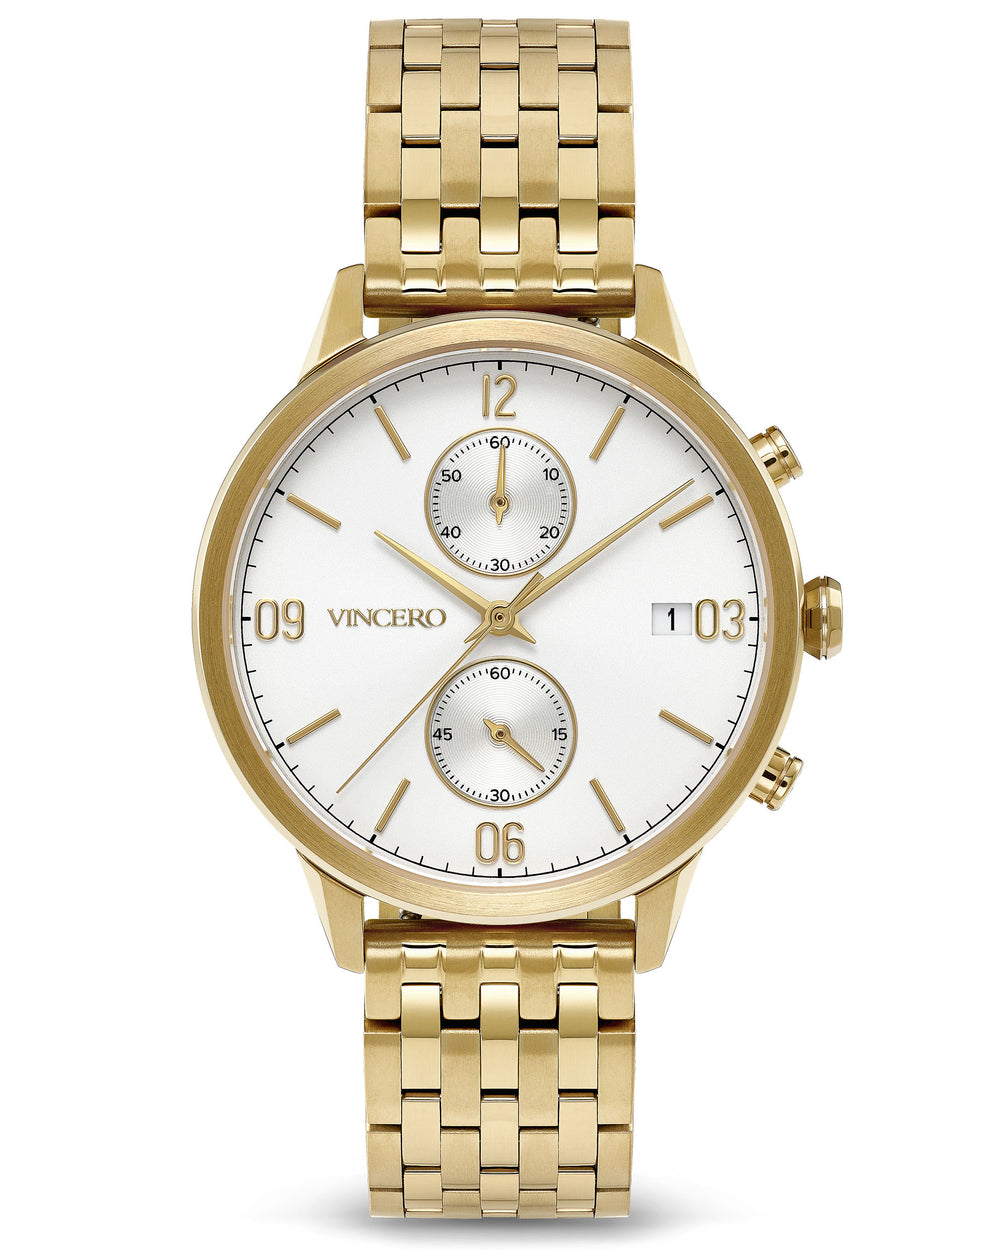 The Reign Gold 316L Stainless Steel Strap White Watch Face Gold Case Clasp Gold Accents